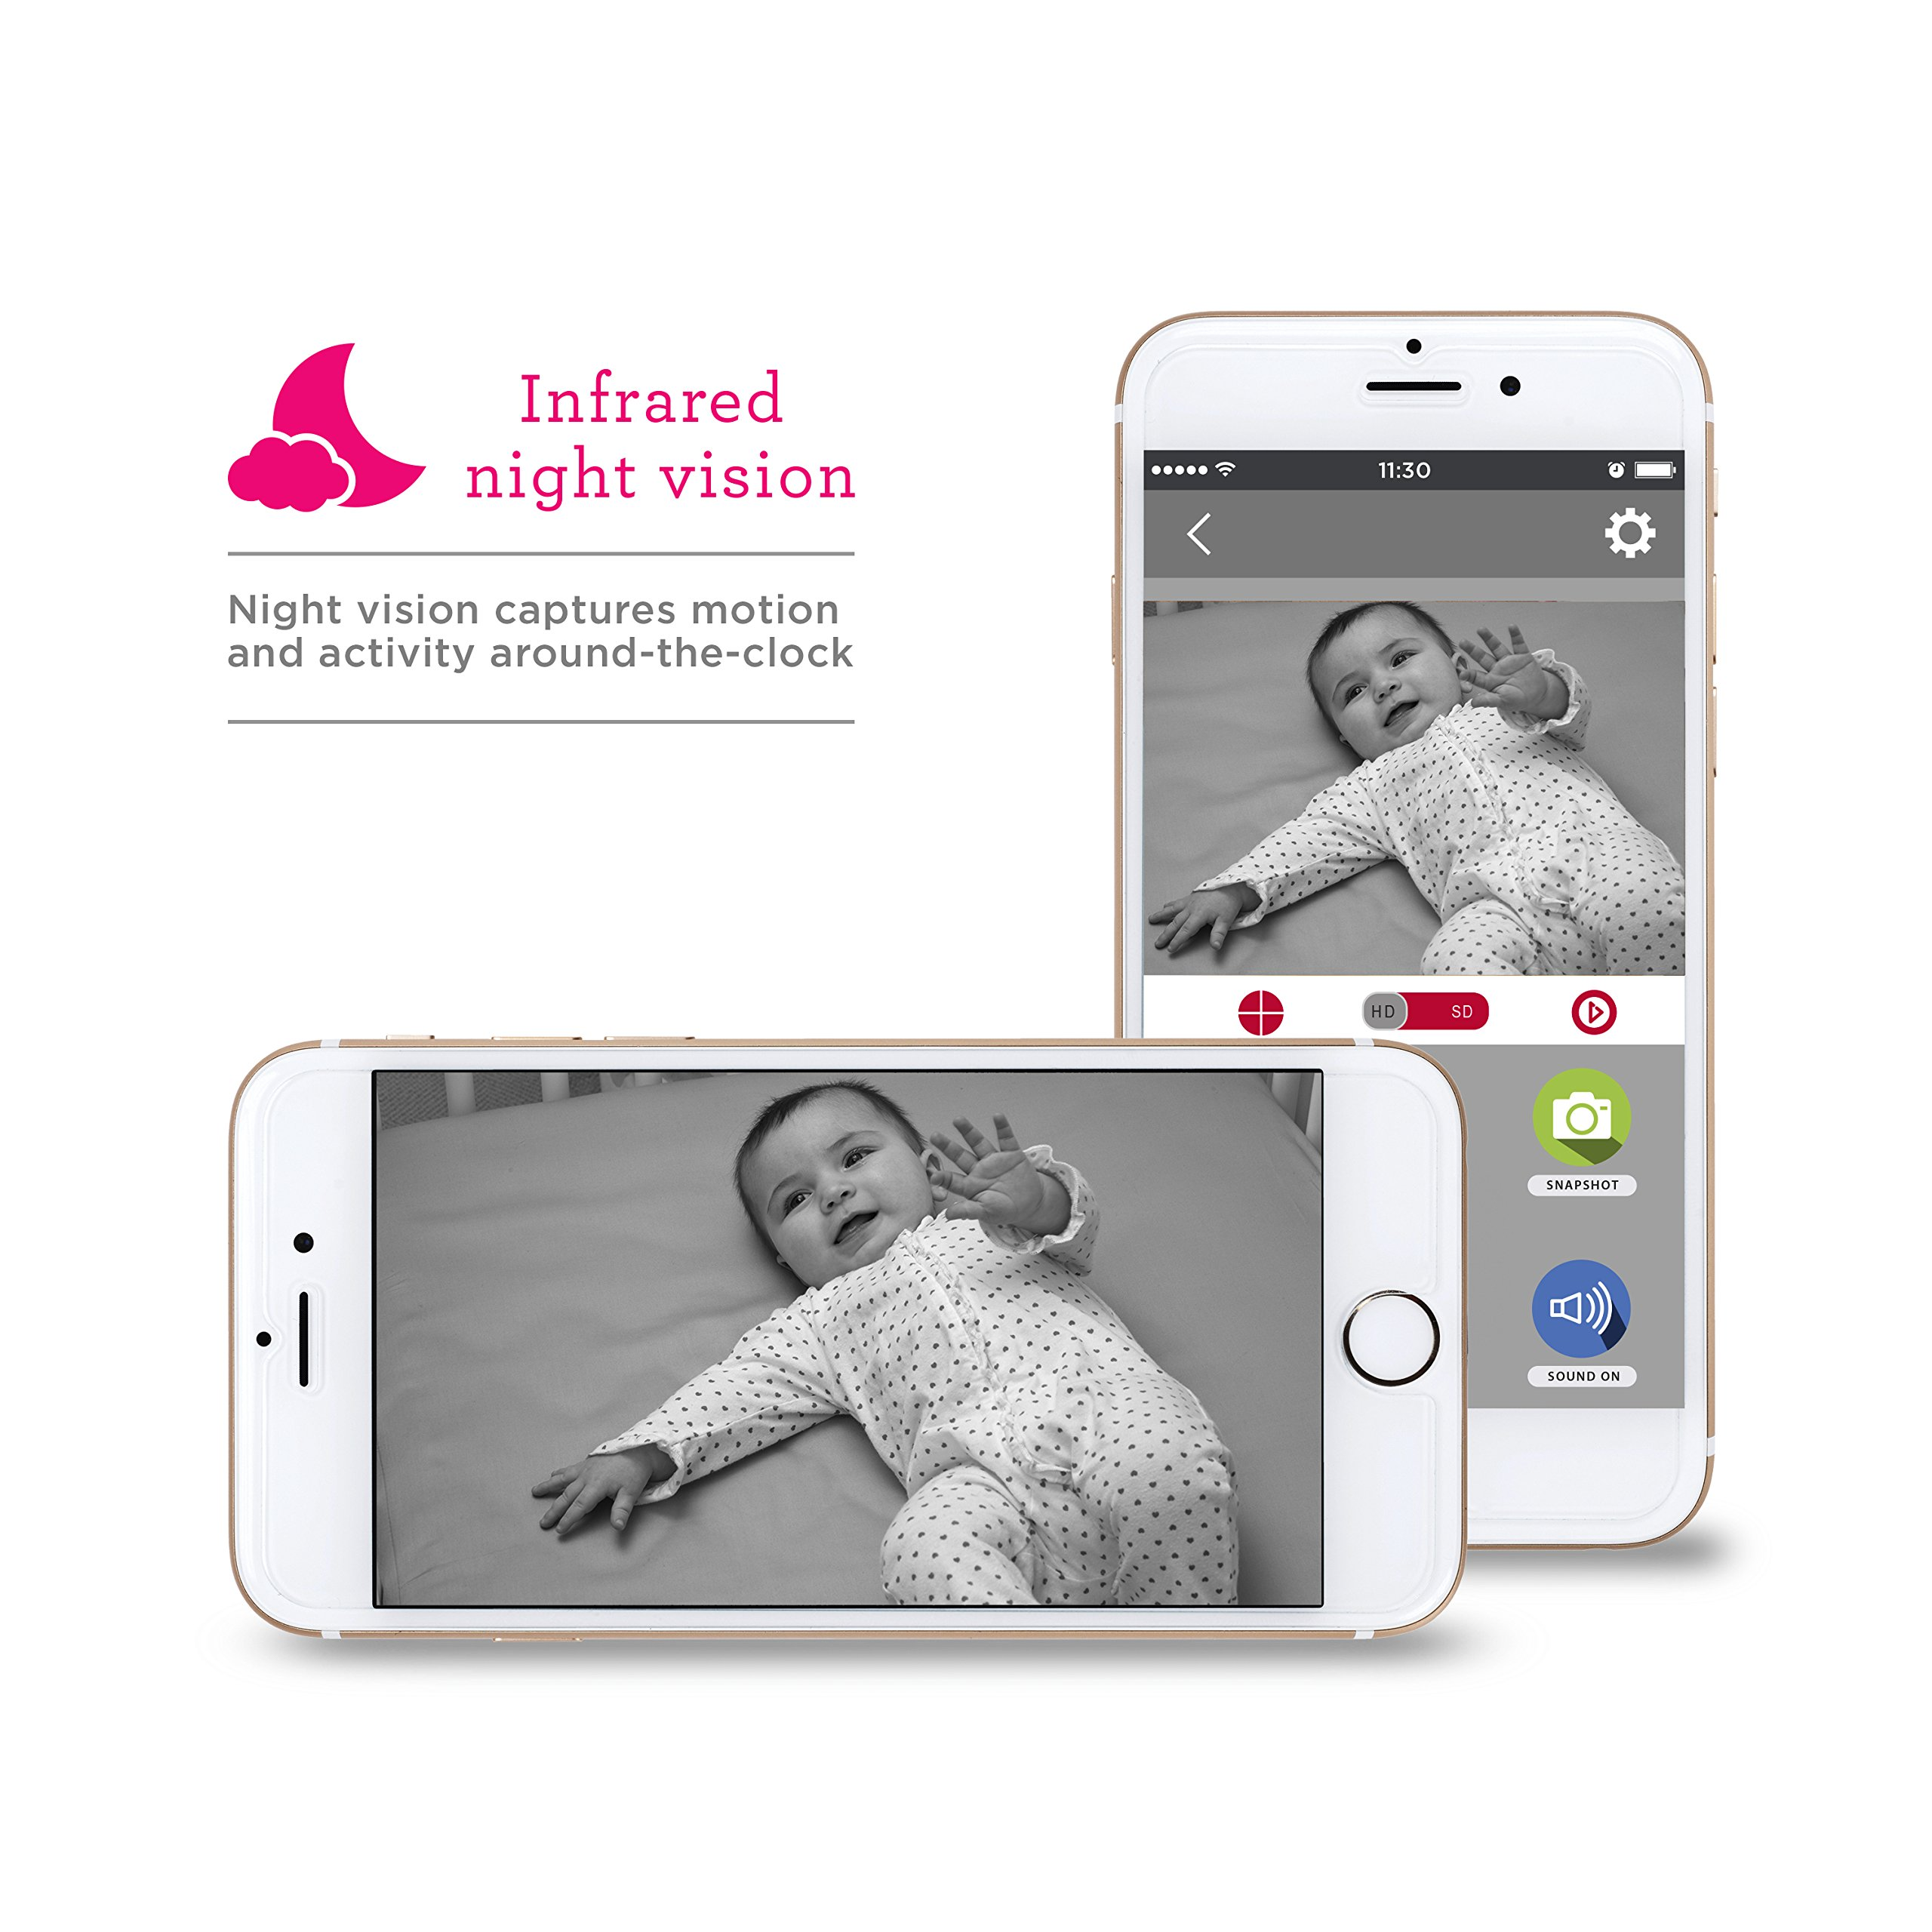 Project Nursery HD WiFi Video Baby Monitor System with Sound, Motion & Temperature Alerts & an App for iOS, Android and Any Smartphone or Tablet by Project Nursery (Image #5)